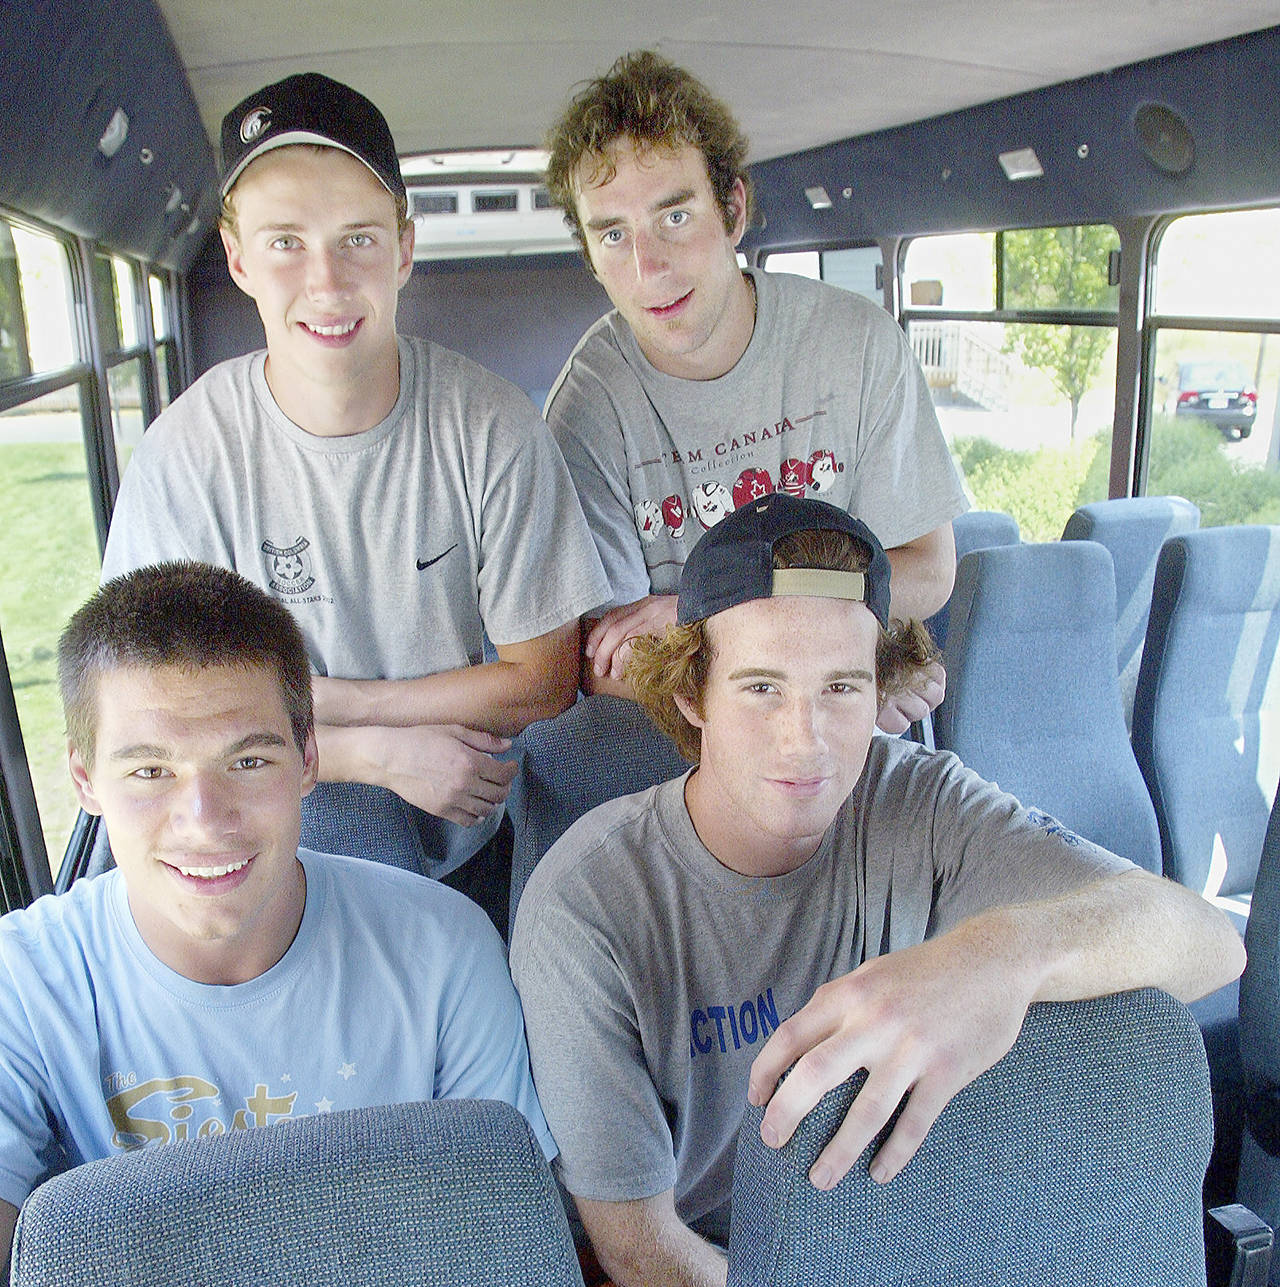 Mitch Love (top right) poses with teammates (clockwise from top left) Torrie Wheat, Jeff Harvey and Jovan Matic prior to the start of the Everett Silvertips' inaugural season in 2003. (Michael O'Leary / The Herald)